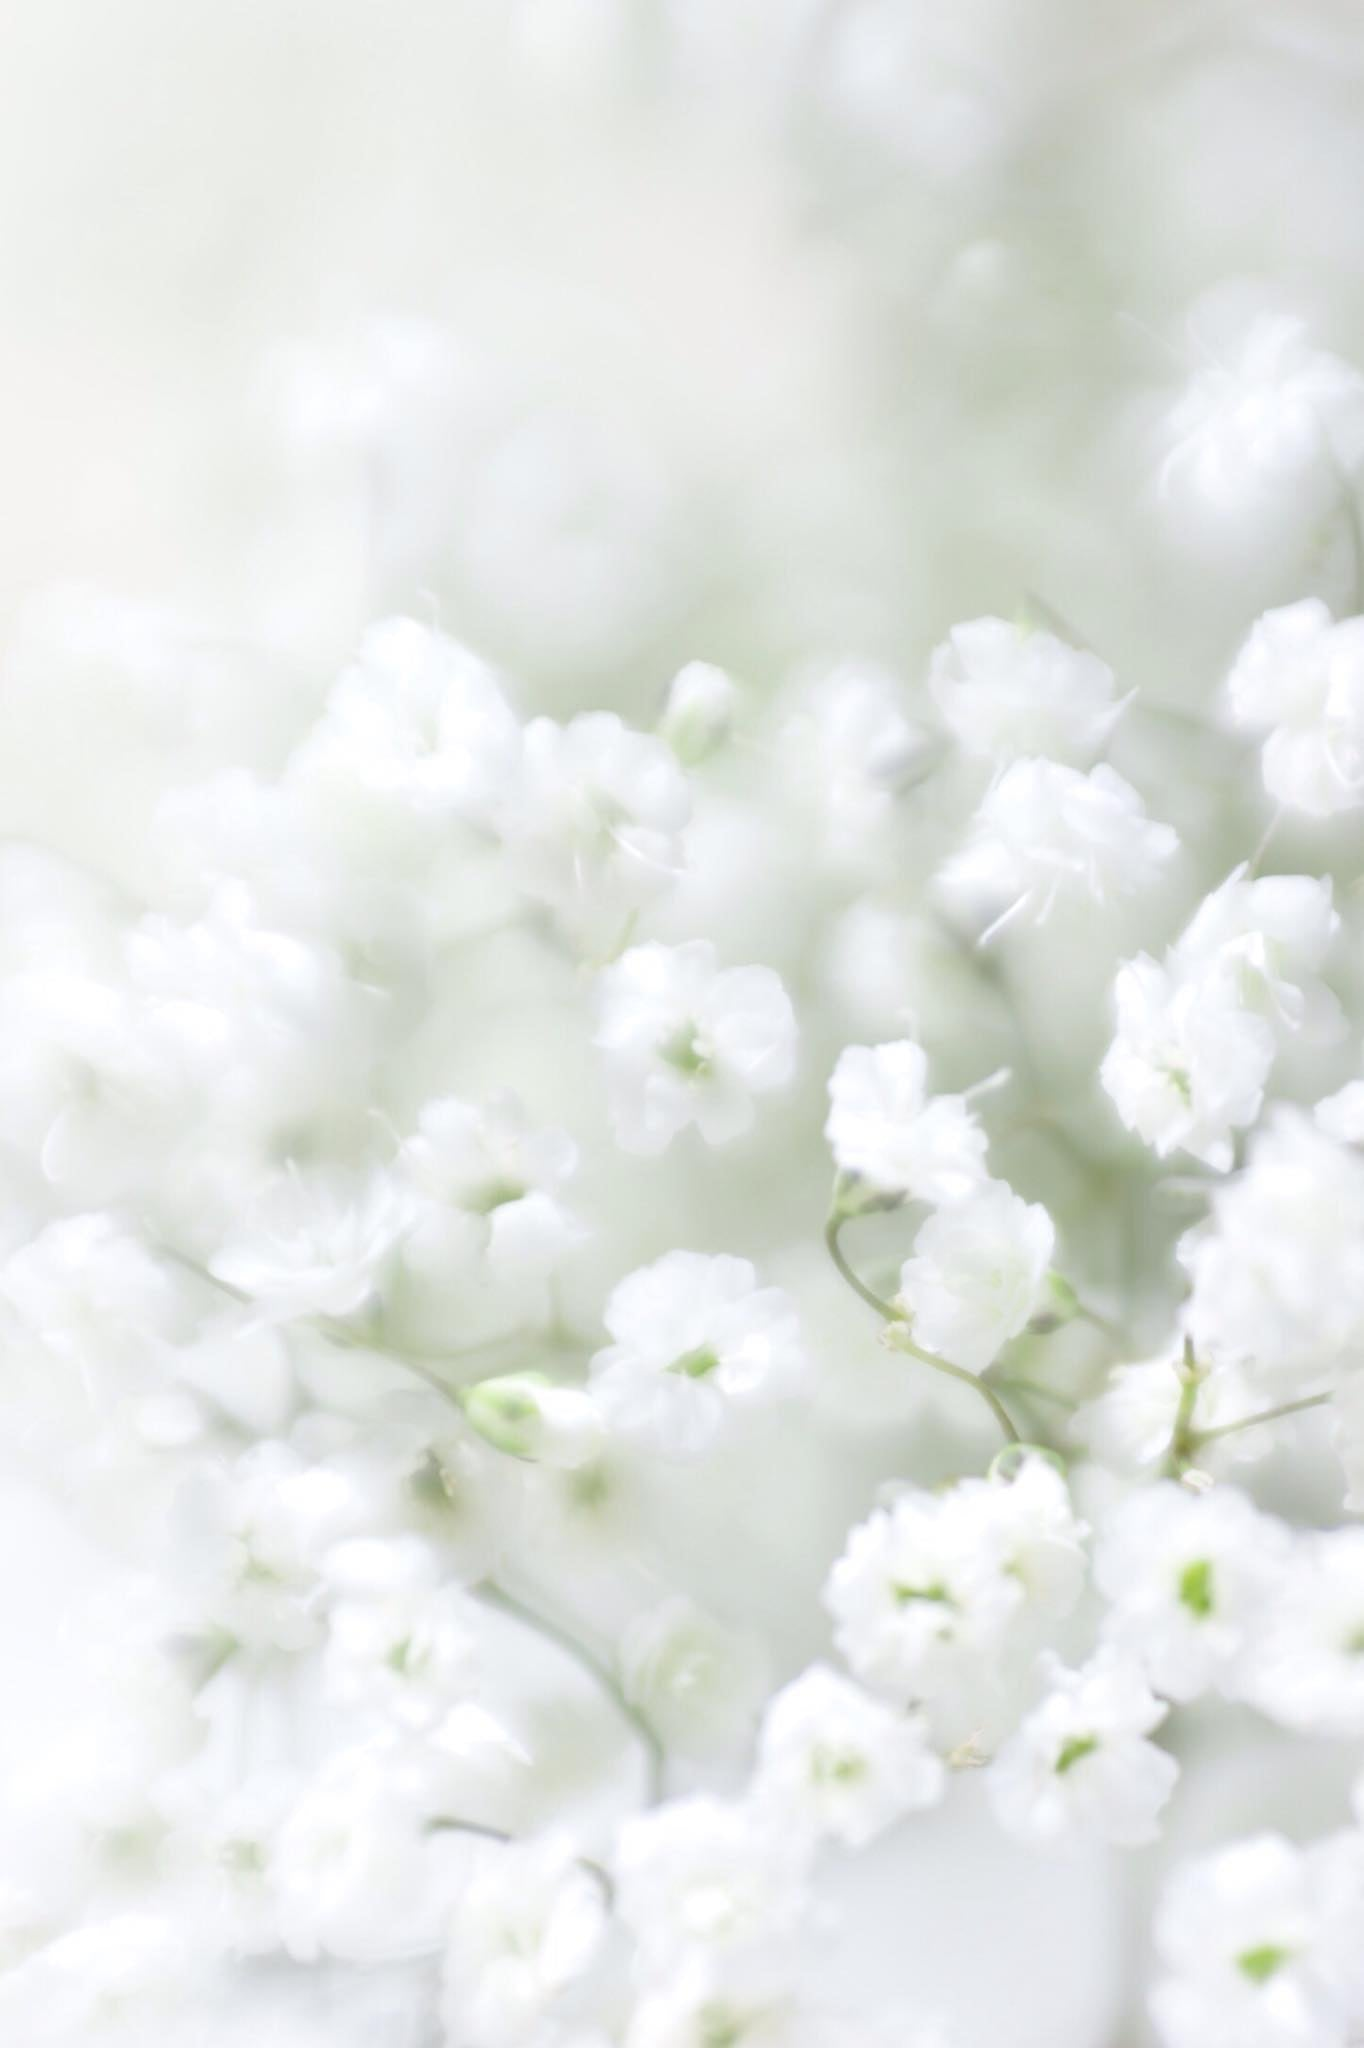 white flowers puffy flower blossoms selective focus soft pillows Lensbaby featured photos macro